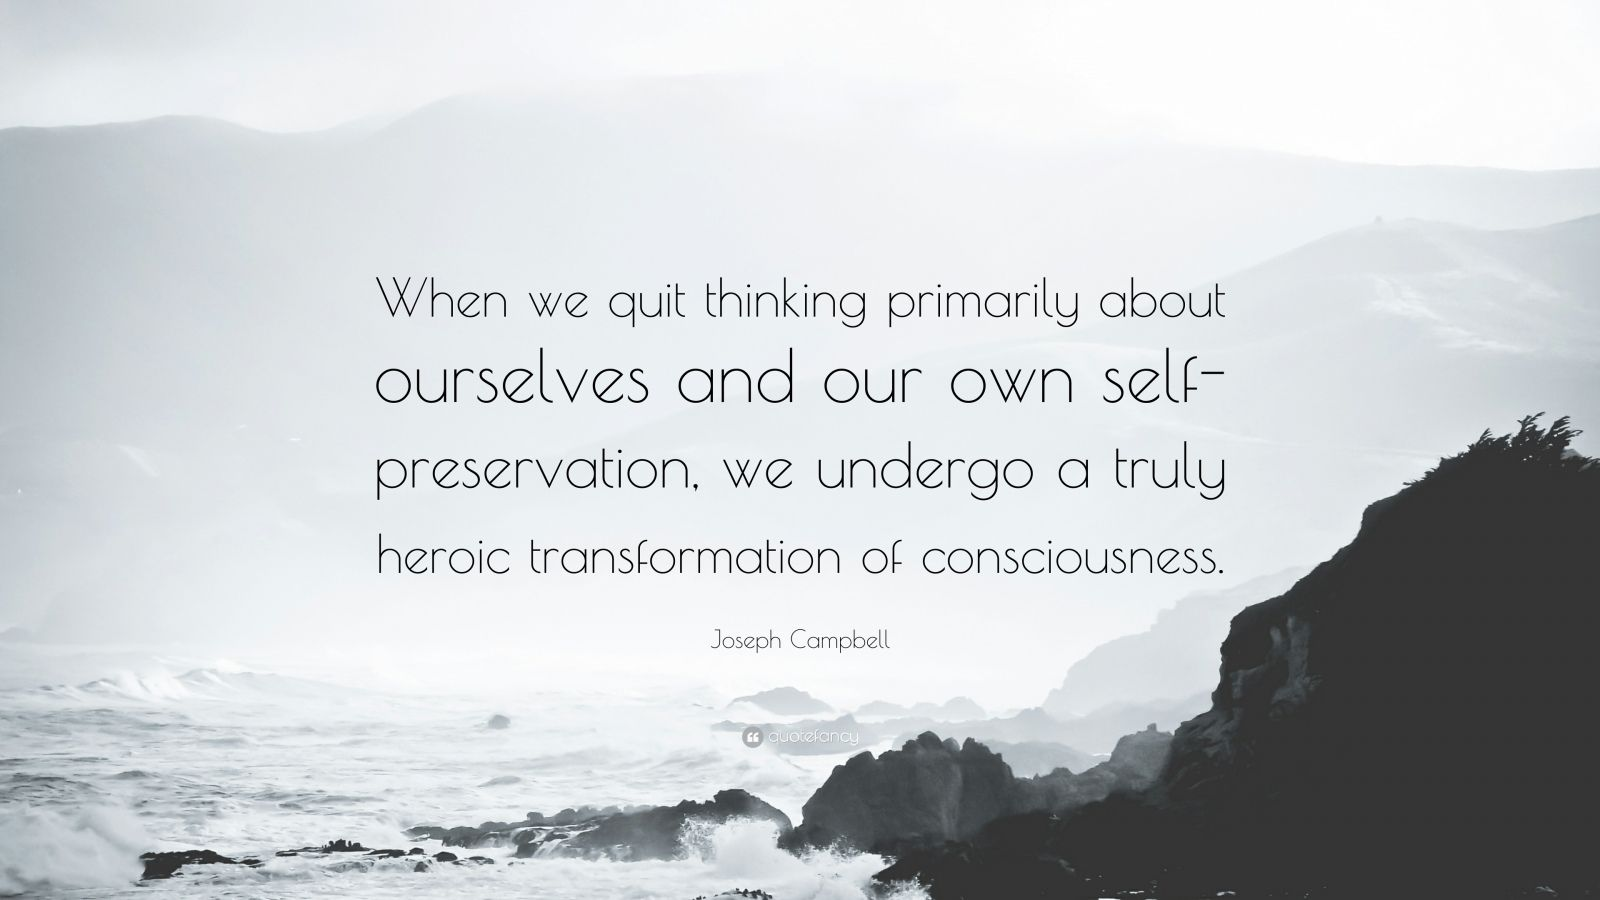 """Joseph Campbell Quote: """"When we quit thinking primarily about ourselves and our own self-preservation, we undergo a truly heroic transformation of consciousness."""""""